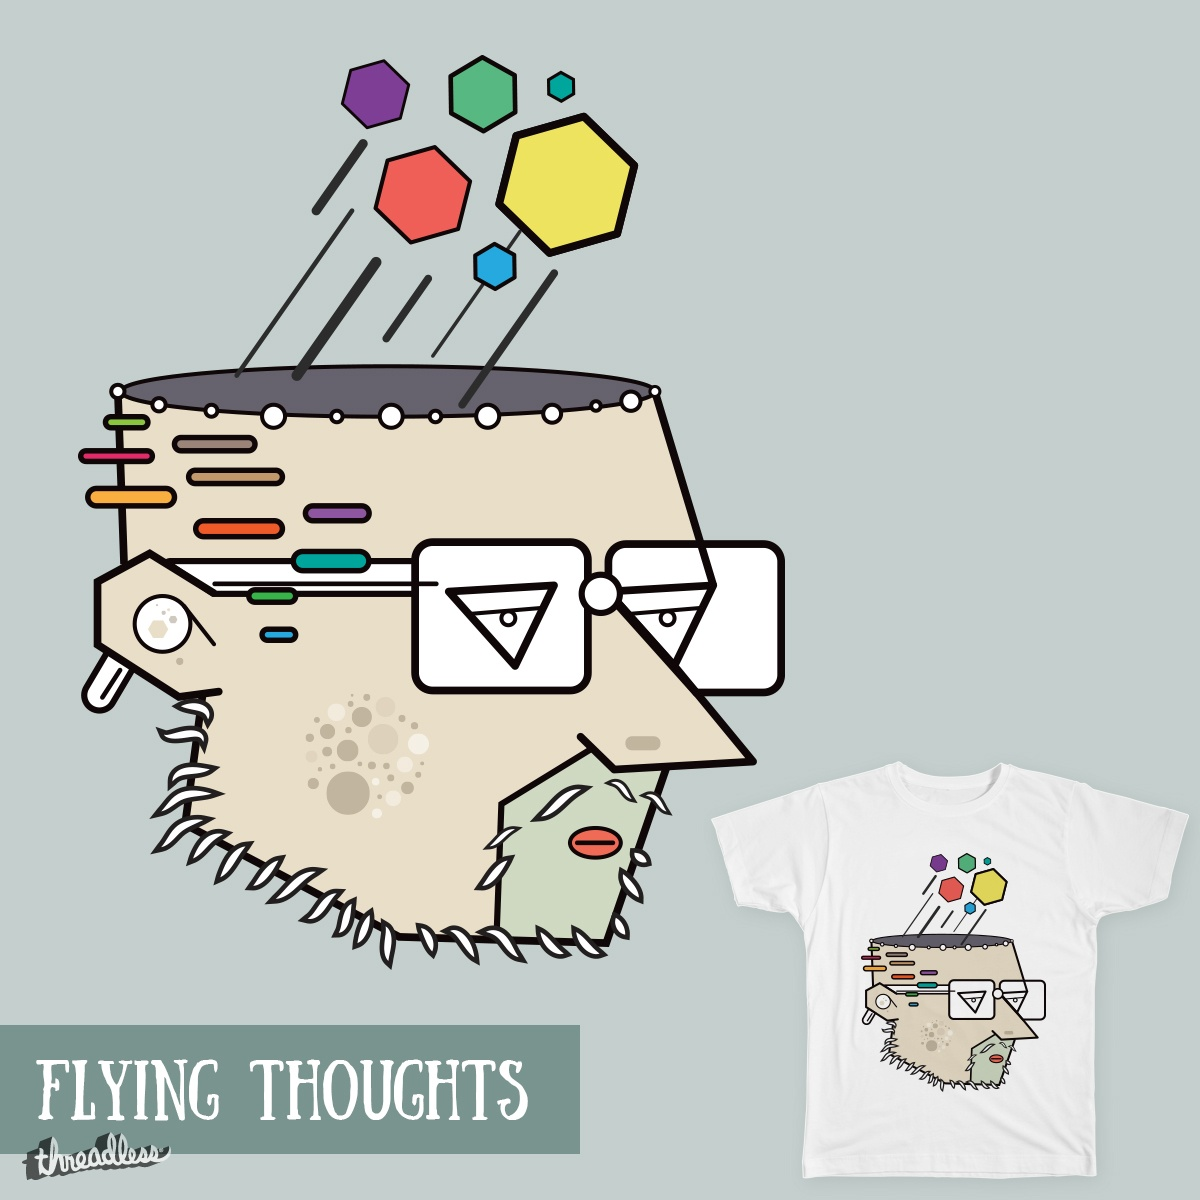 Flying Thoughts, a cool t-shirt design